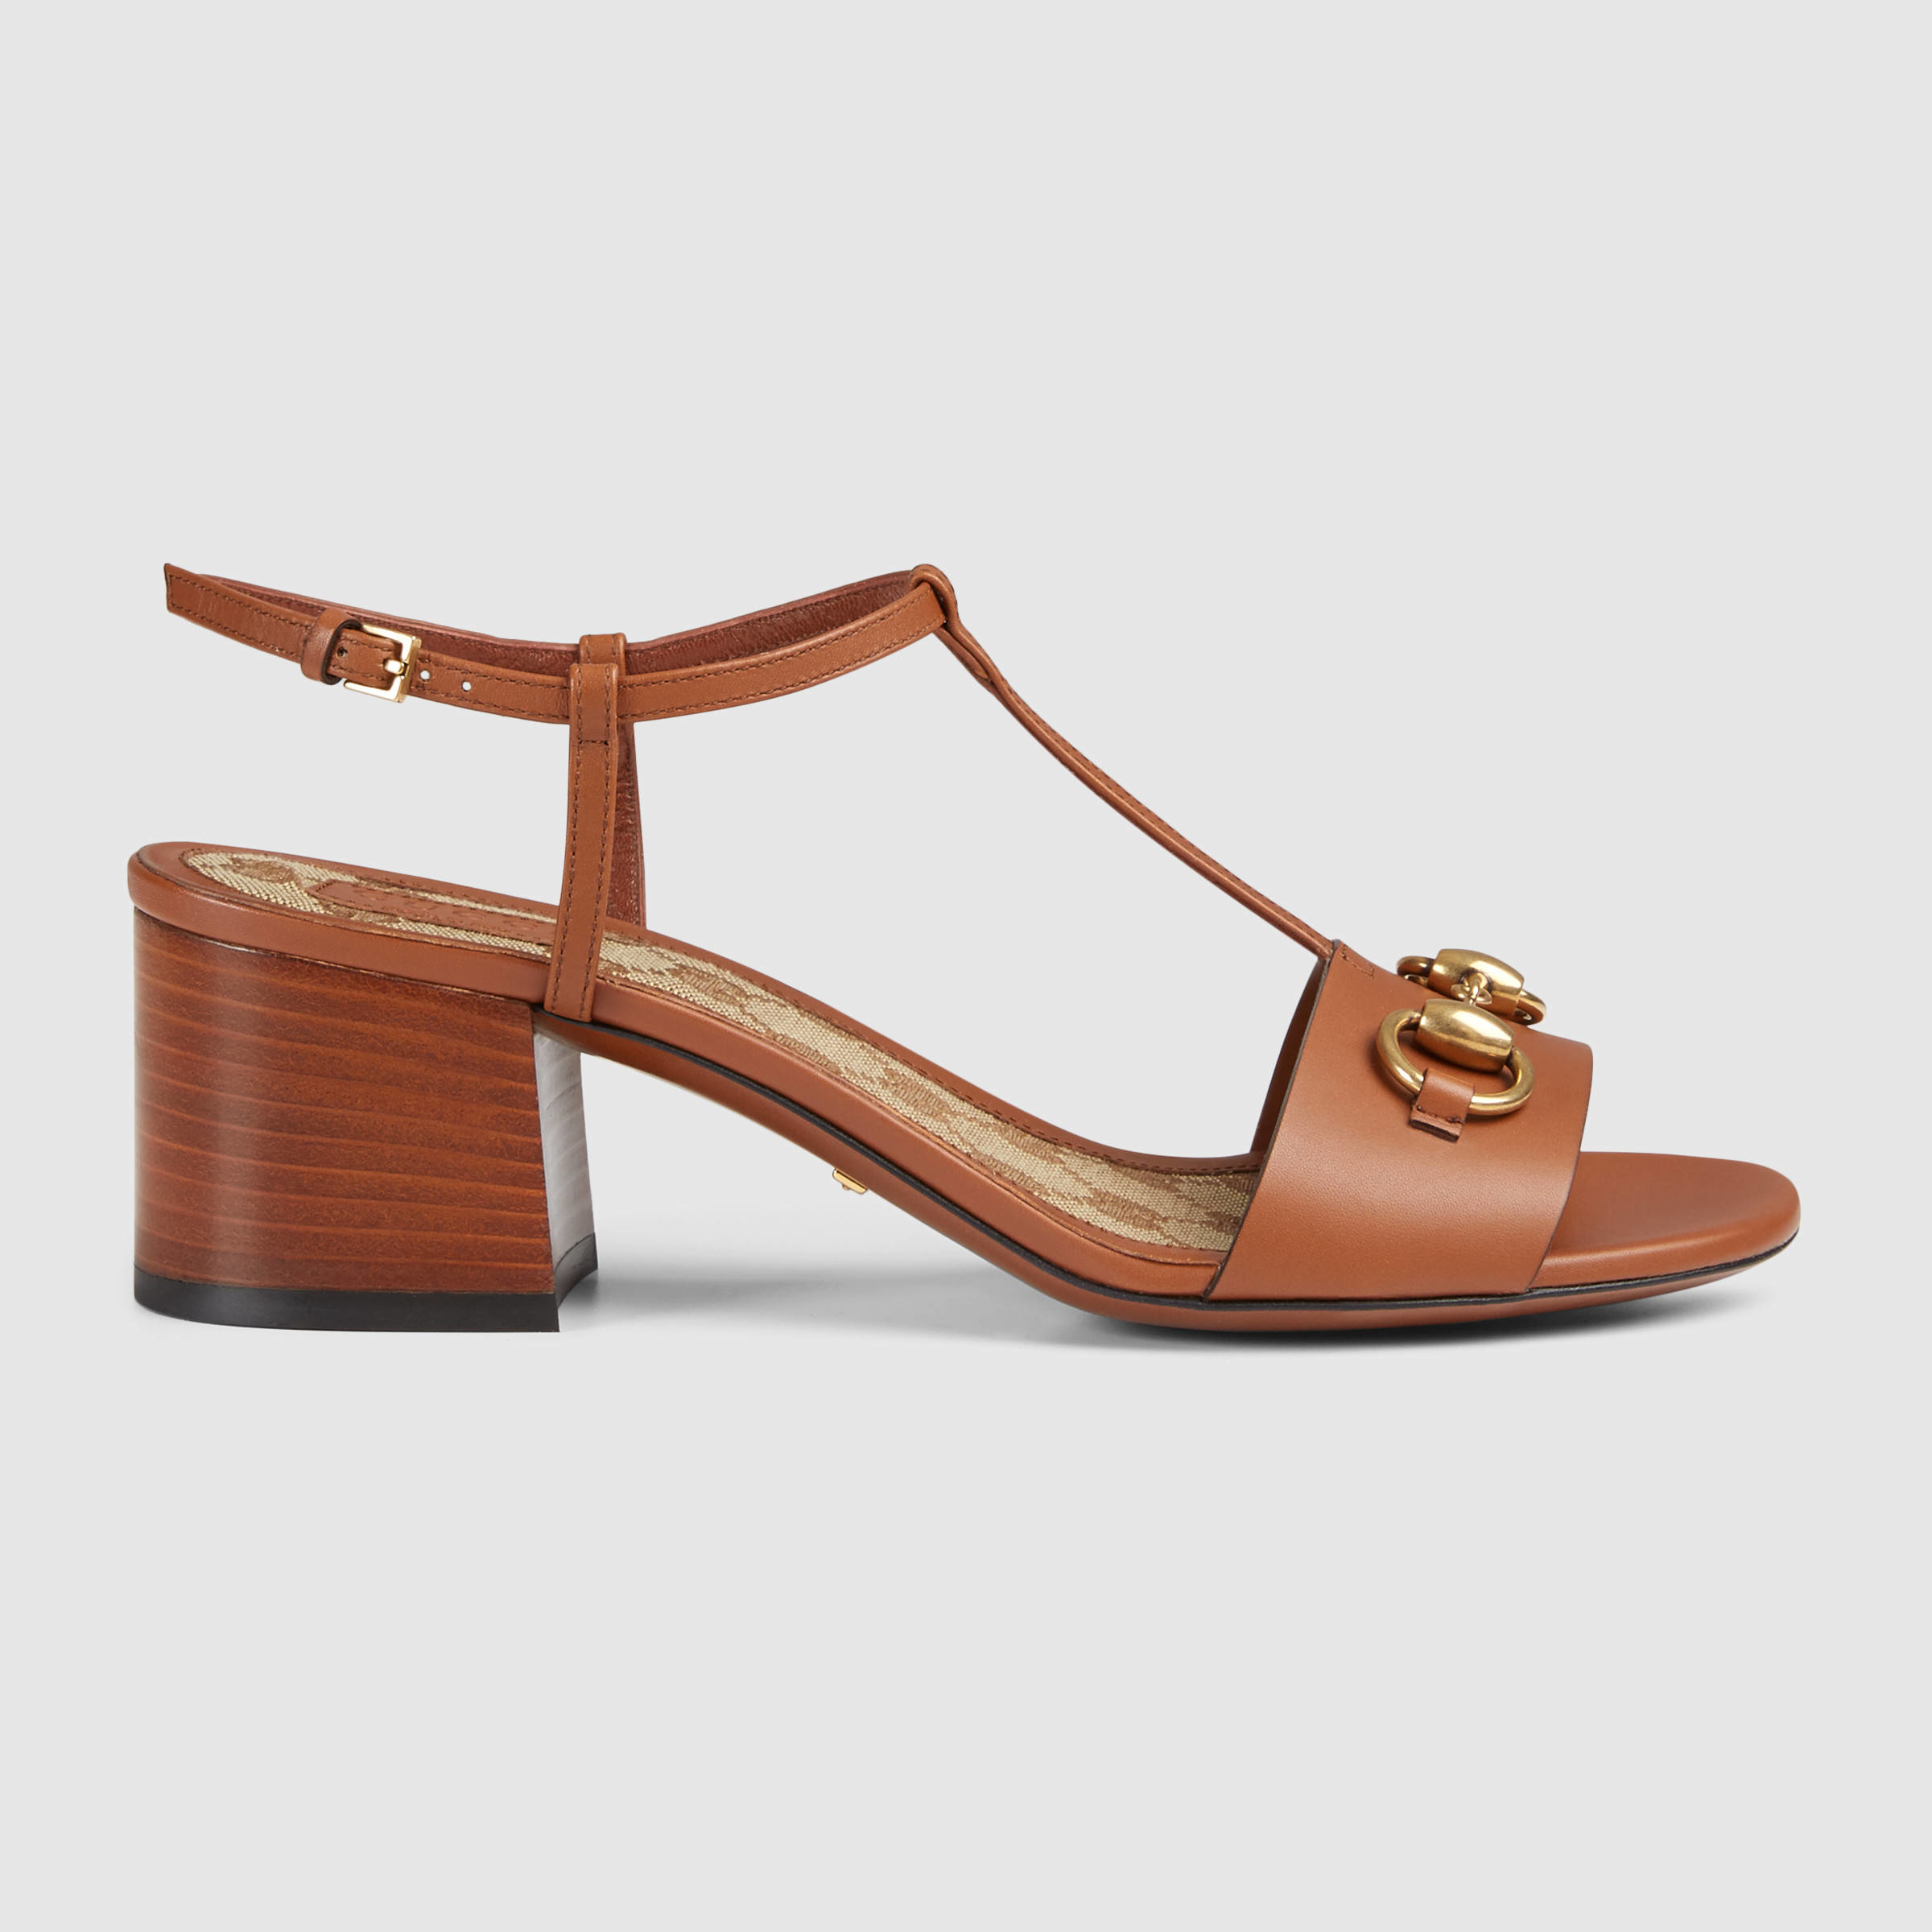 f0f915a91ce Lyst - Gucci Leather Mid-heel Sandal in Brown